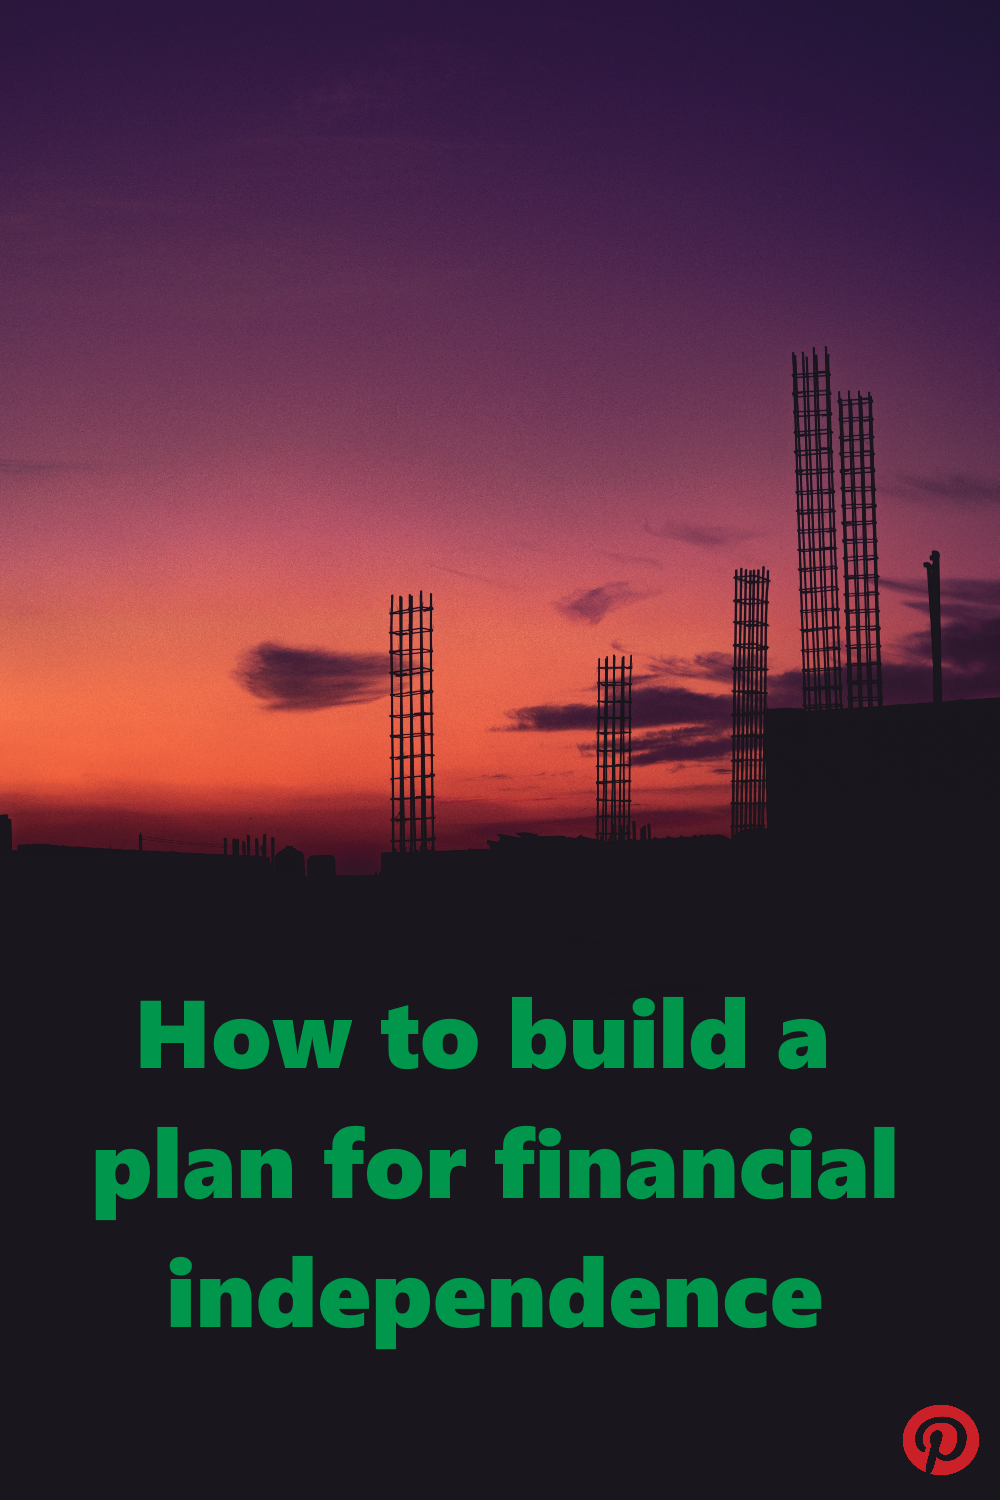 How to build a plan for financial independence